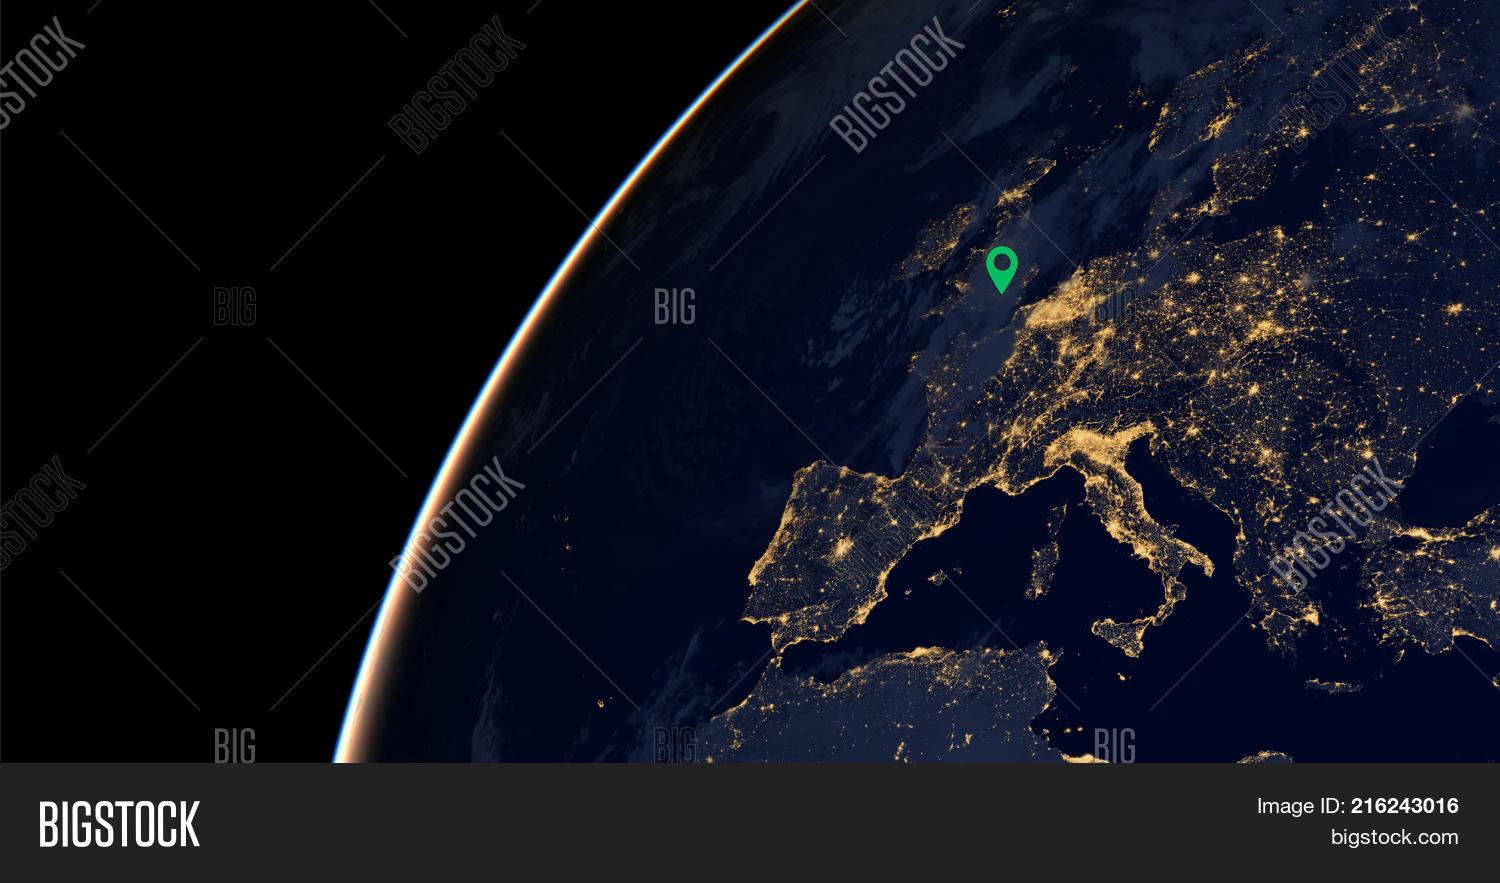 City lights on world map location image photo bigstock city lights on world map with a location pin on london europe elements of gumiabroncs Image collections